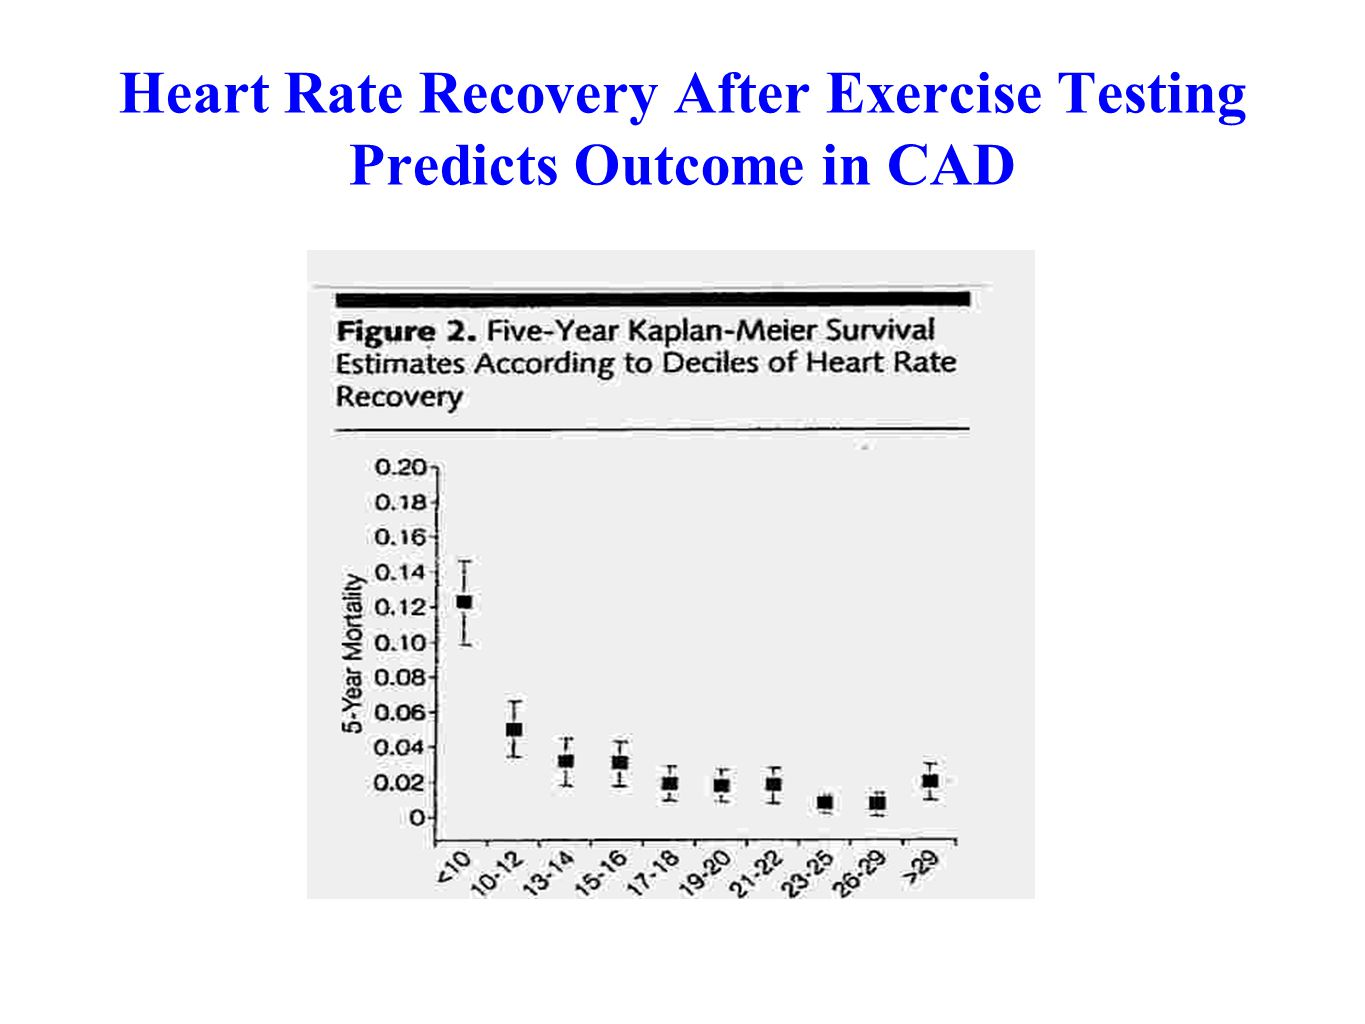 Heart Rate Recovery After Exercise Testing Predicts Outcome in CAD